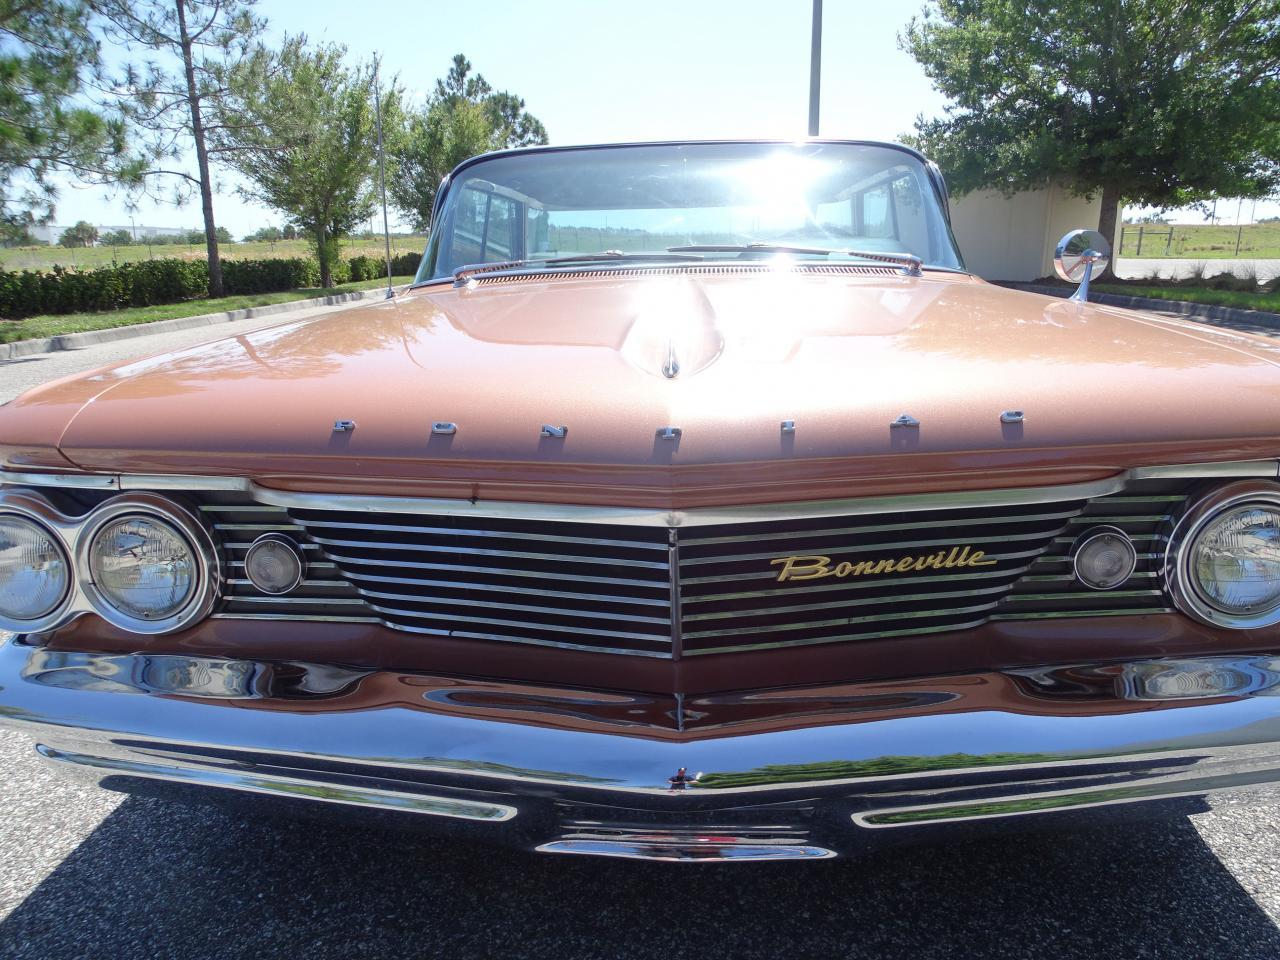 Large Picture of Classic '60 Pontiac Bonneville located in Ruskin Florida - $29,995.00 Offered by Gateway Classic Cars - Tampa - NCZ9